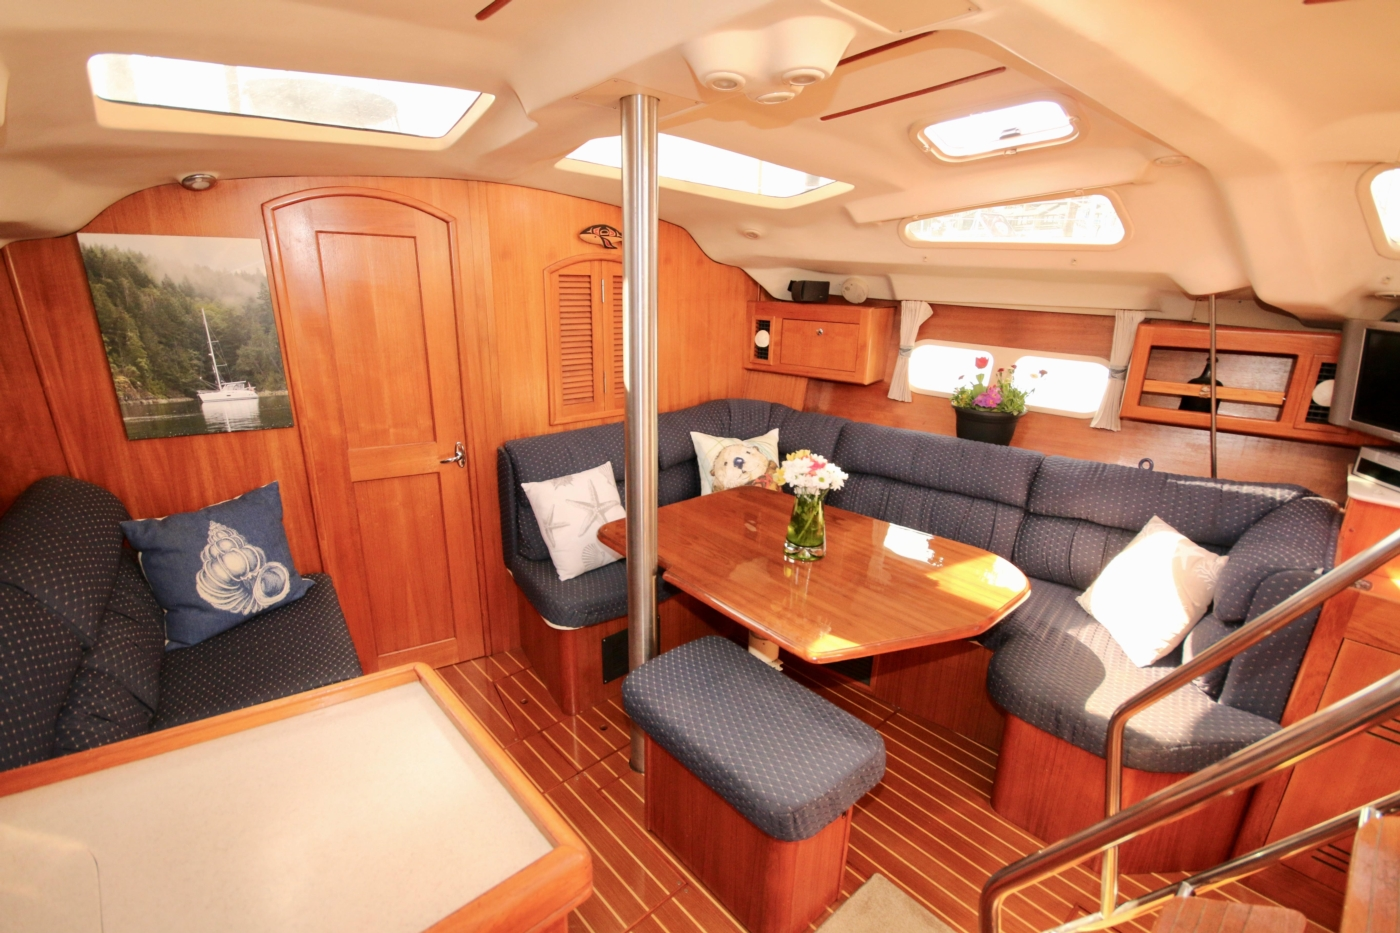 2004 Hunter Passage 420, Salon view forward to starboard